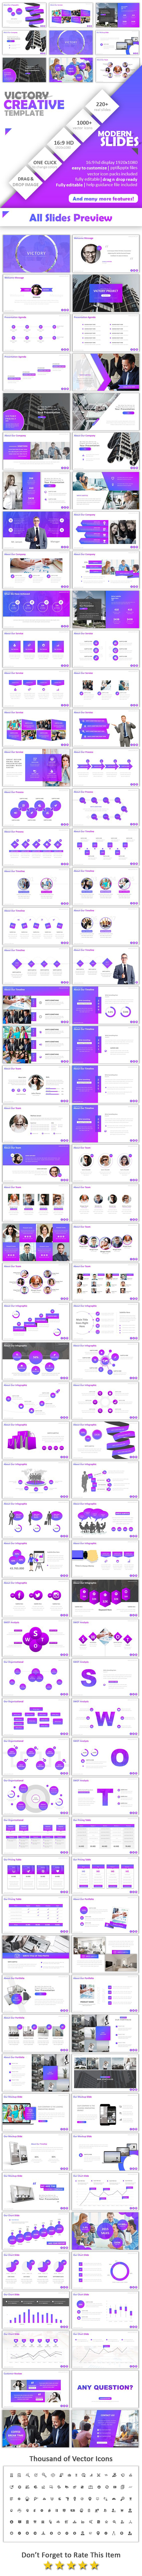 Victory Powerpoint - Business PowerPoint Templates